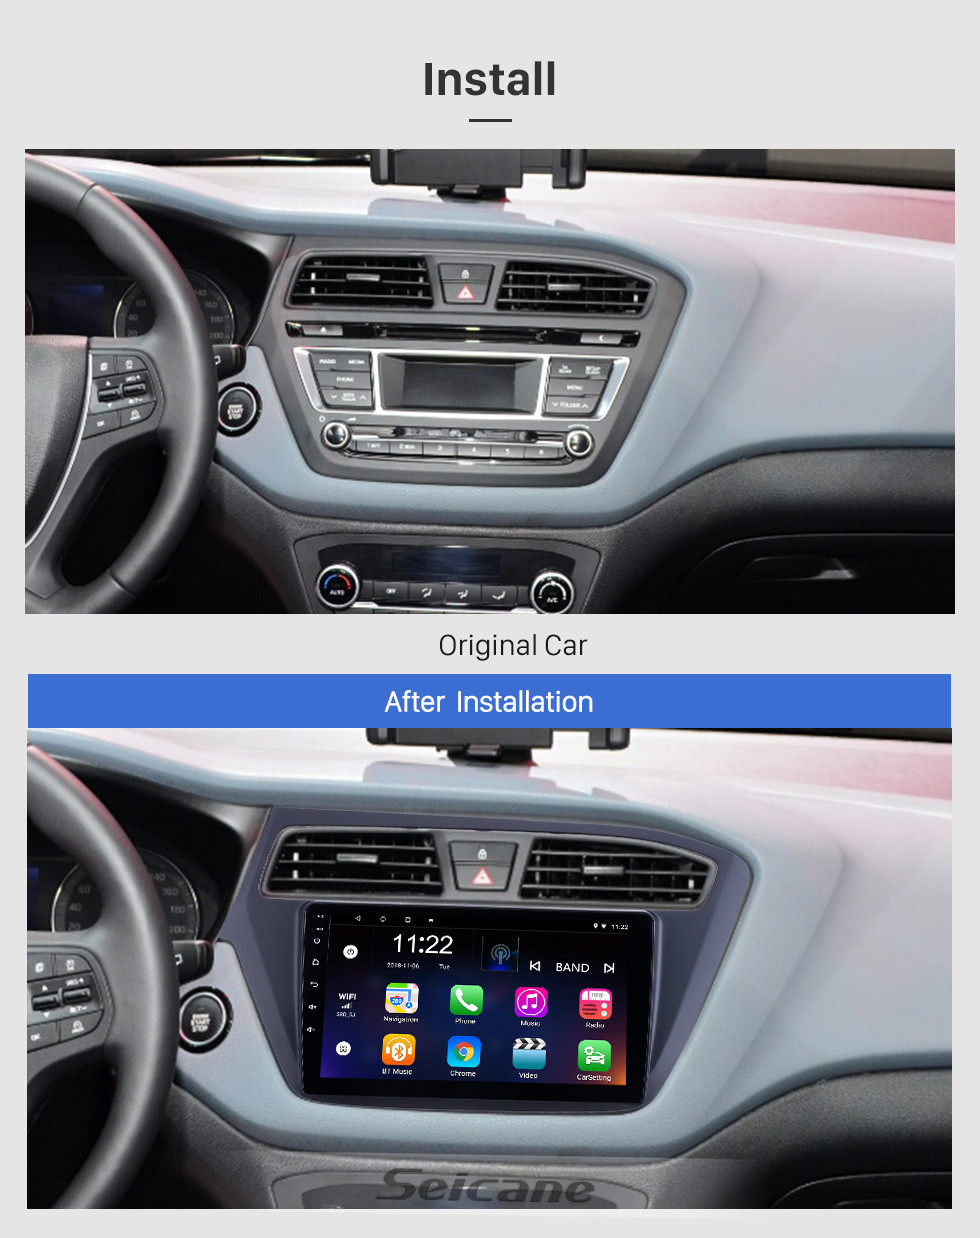 Seicane 2018-2019 Hyundai i20 LHD Android 10.0 Touchscreen 9 inch Head Unit Bluetooth GPS Navigation Radio with AUX WIFI support OBD2 DVR SWC Carplay